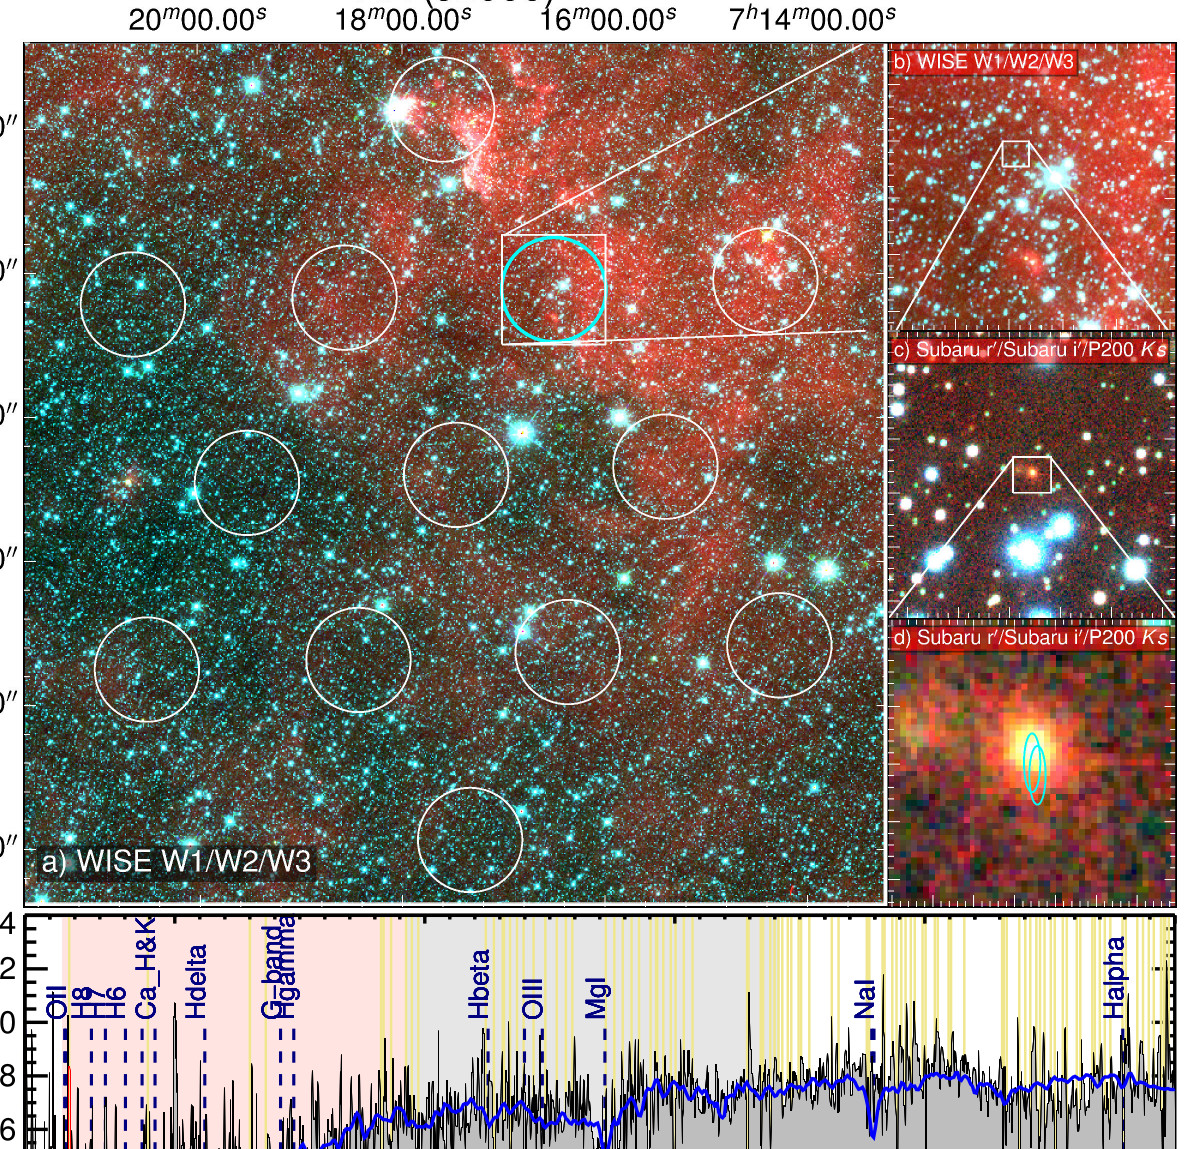 a-powerful-radio-source-in-a-distant-galaxy-emits-regular-signals-with-a-period-of-16-days-towards-the-earth